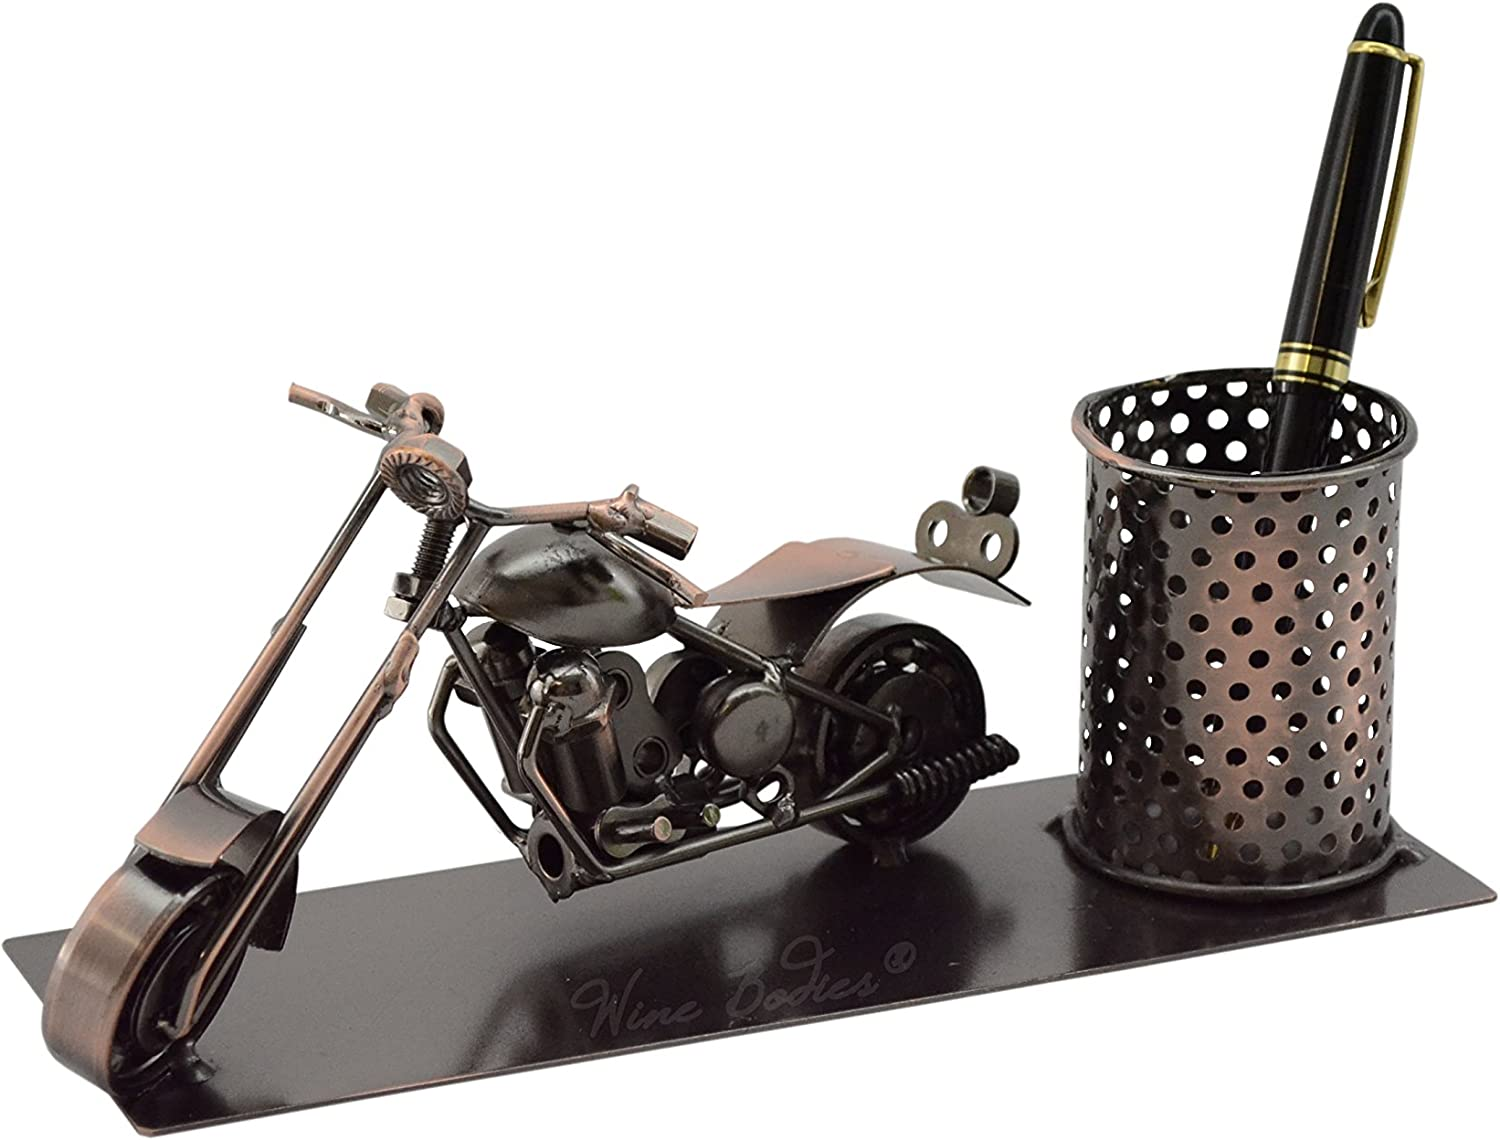 Wine Bodies Custom Chopper Motorcycle Business Pen Holder Desk Organizer